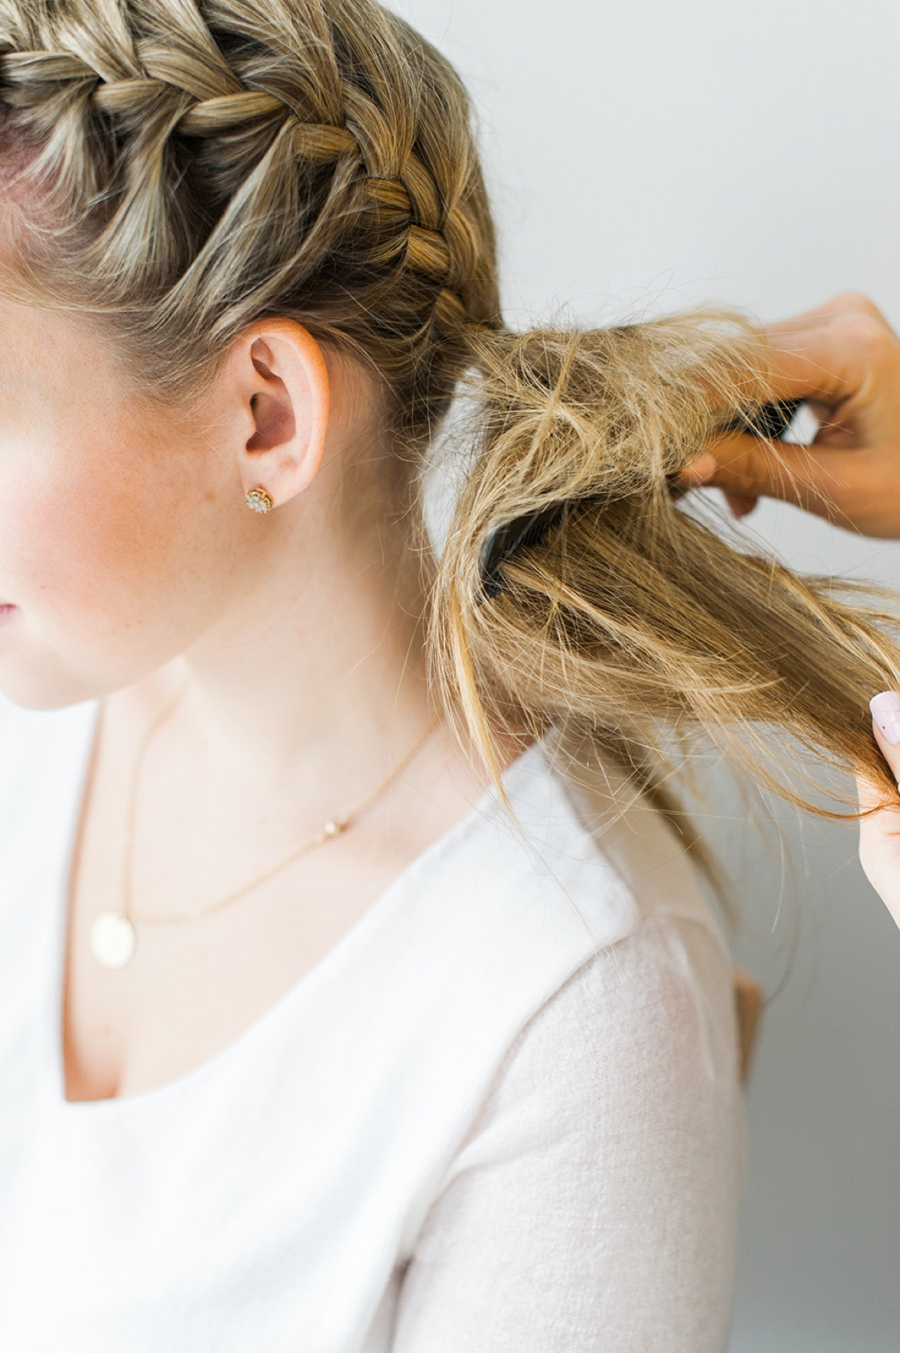 |STEP 4|Using a comb, backcomb your side ponytail to create tons of volume and texture.